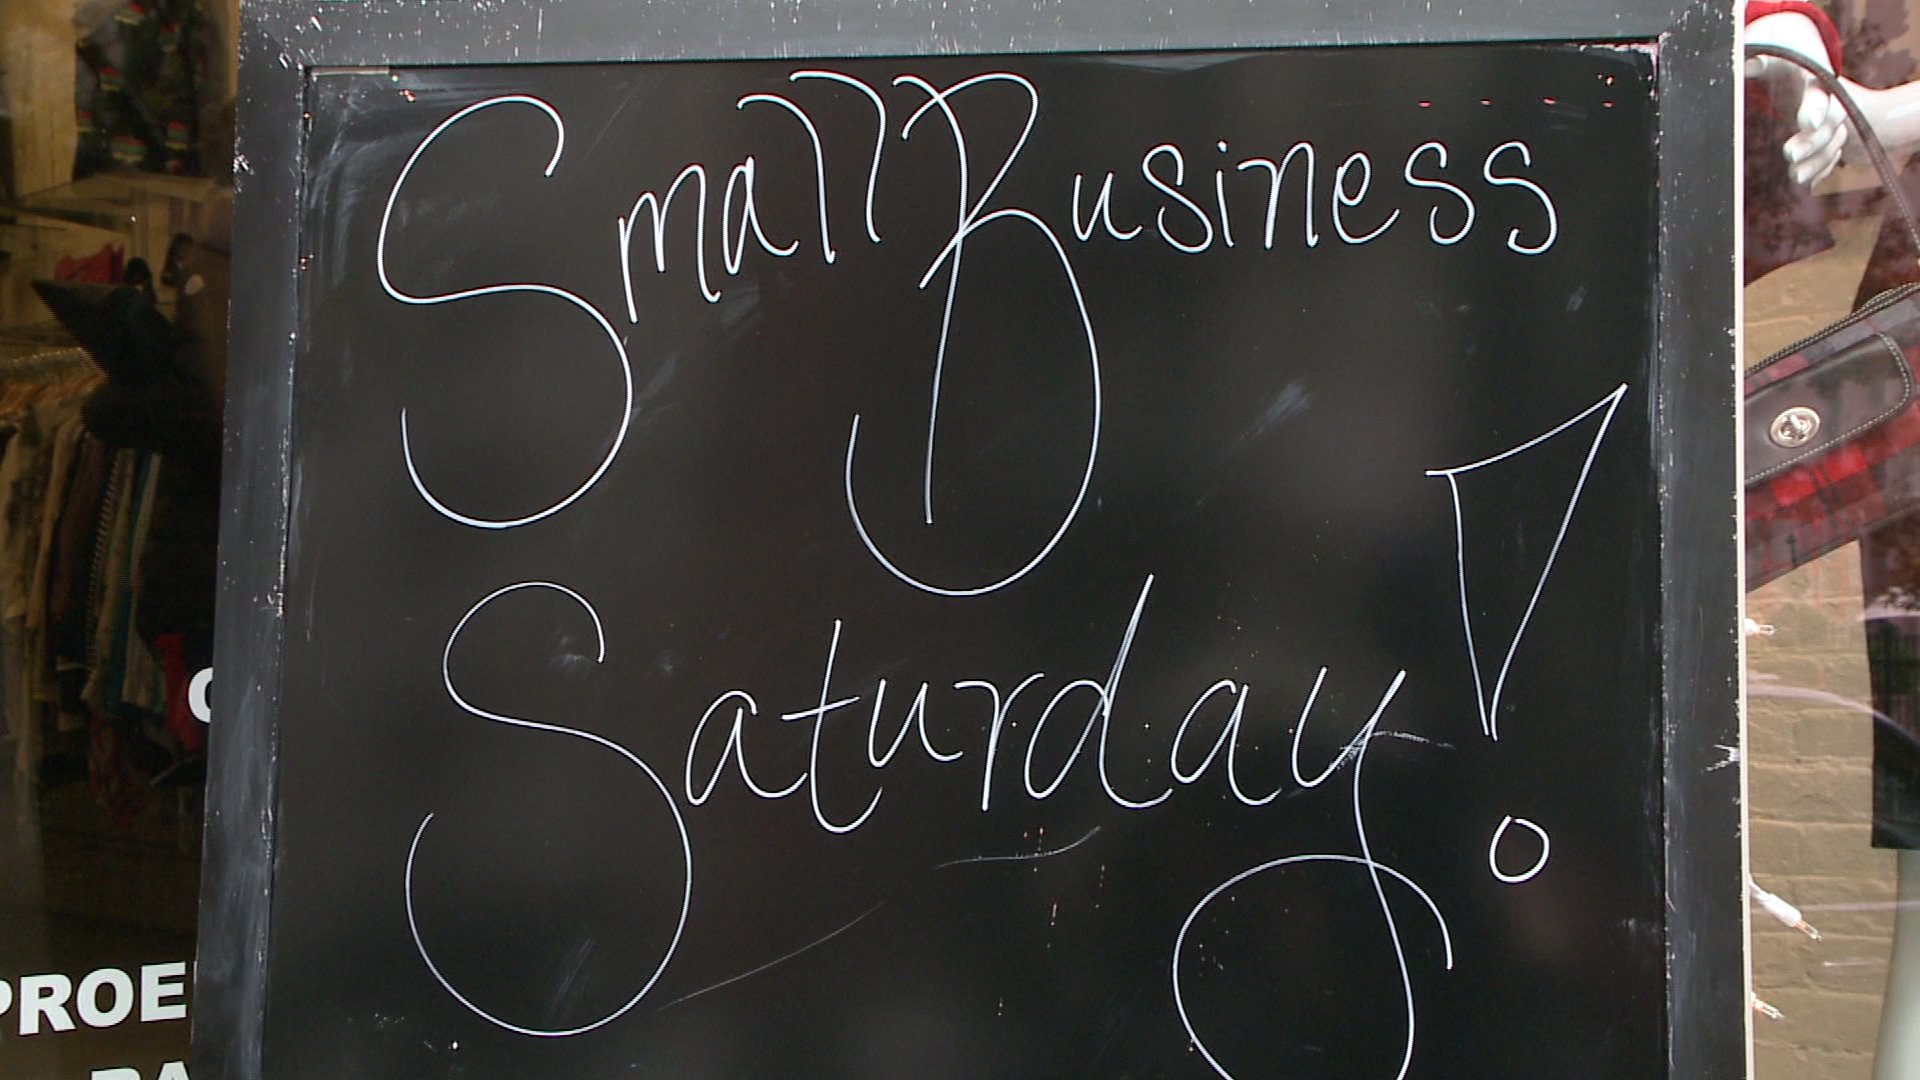 Holiday shoppers hit mom and pop shops for Small BusinessSaturday